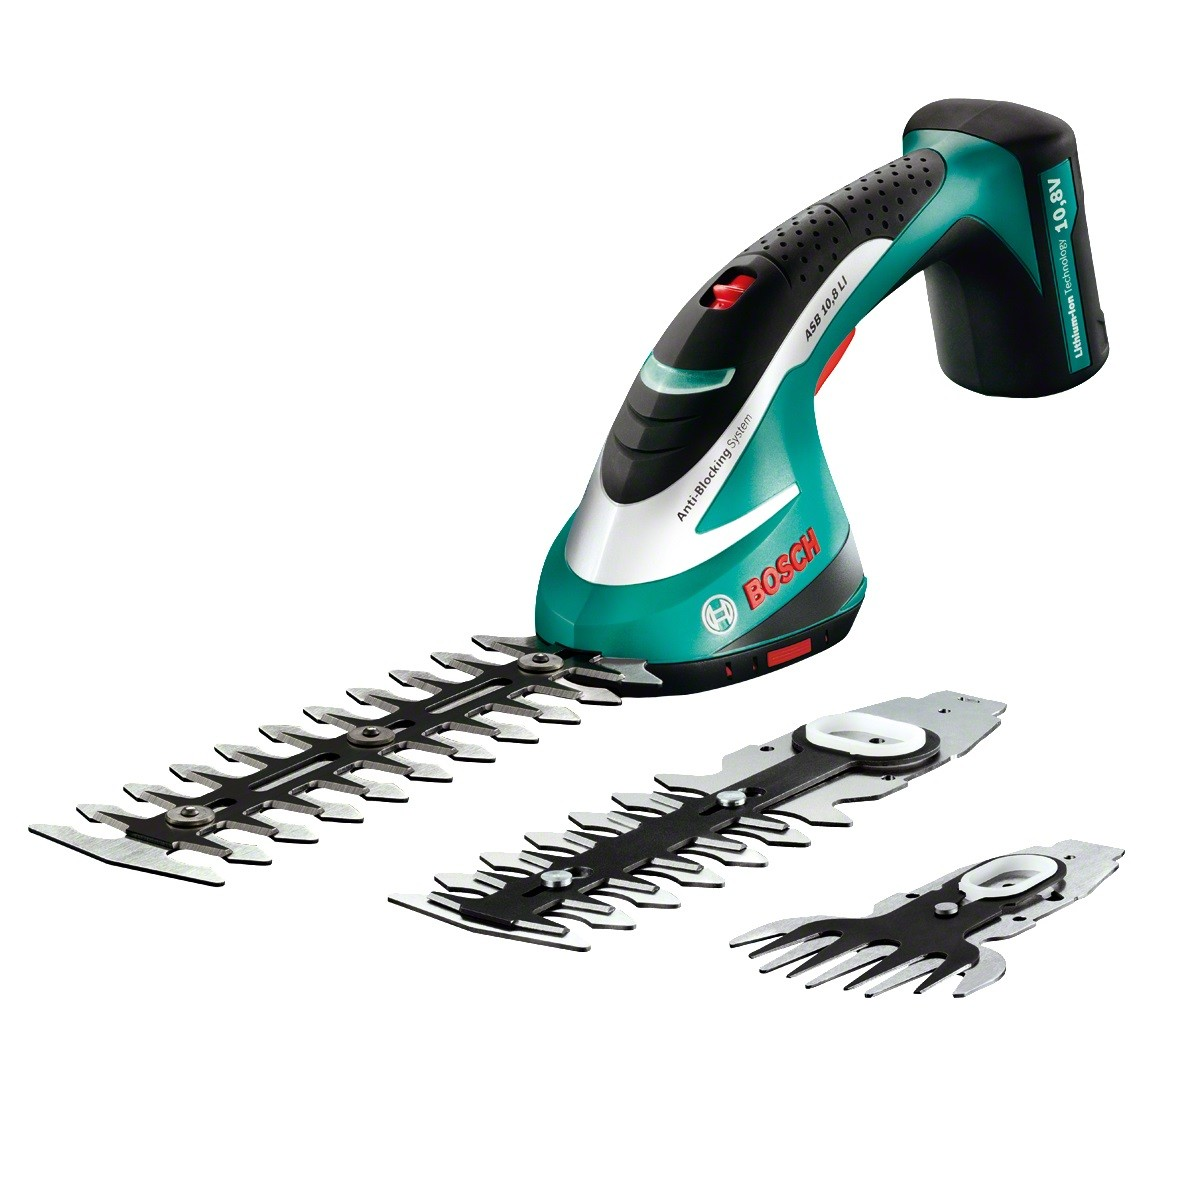 Bosch Green ASB 10.8 LI 10.8v Cordless Shrub & Grass Shear Set 0600856371